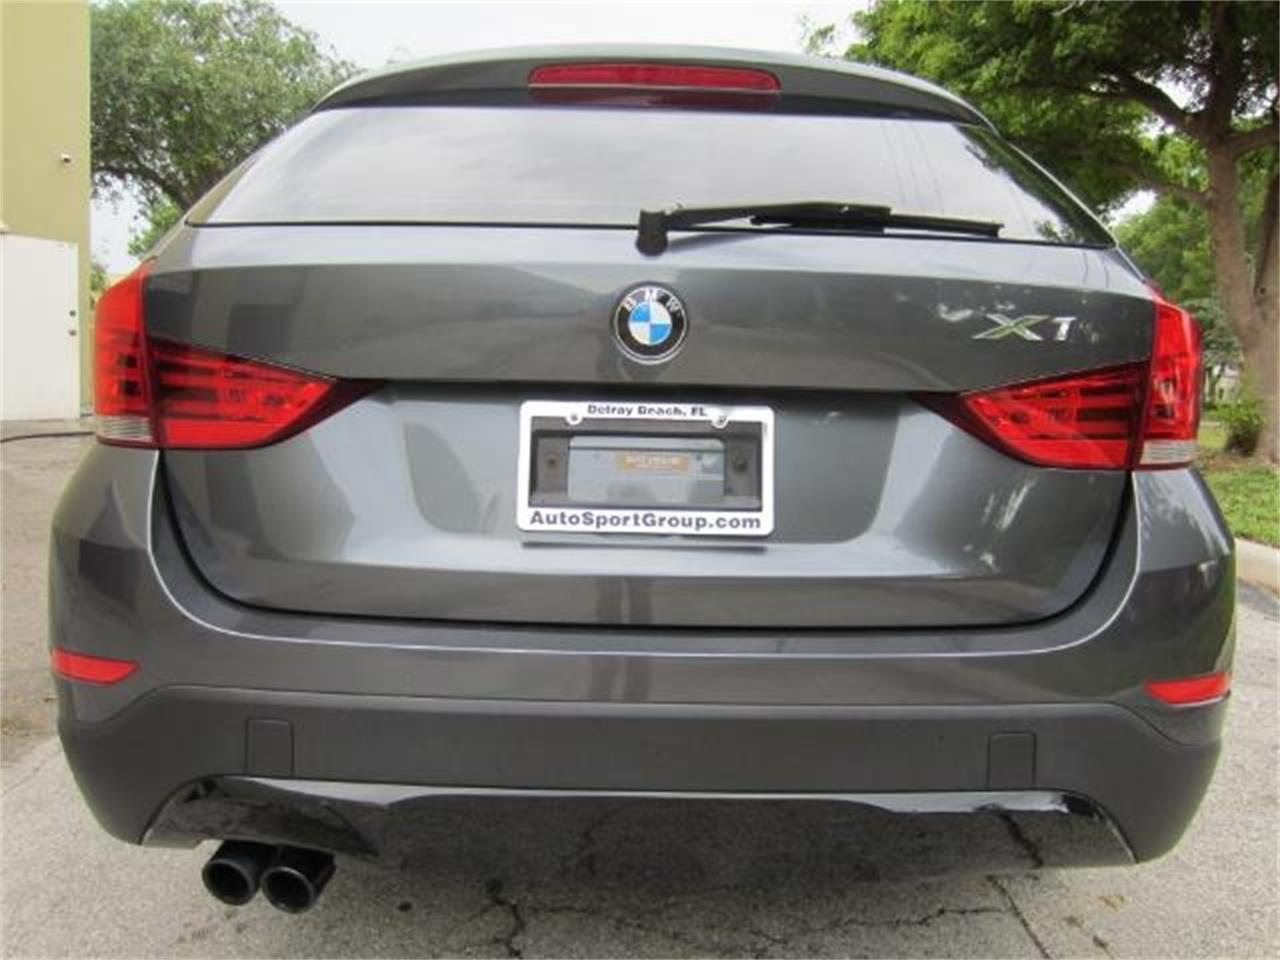 Large Picture of '14 BMW X1 located in Delray Beach Florida - $19,900.00 - LRWY